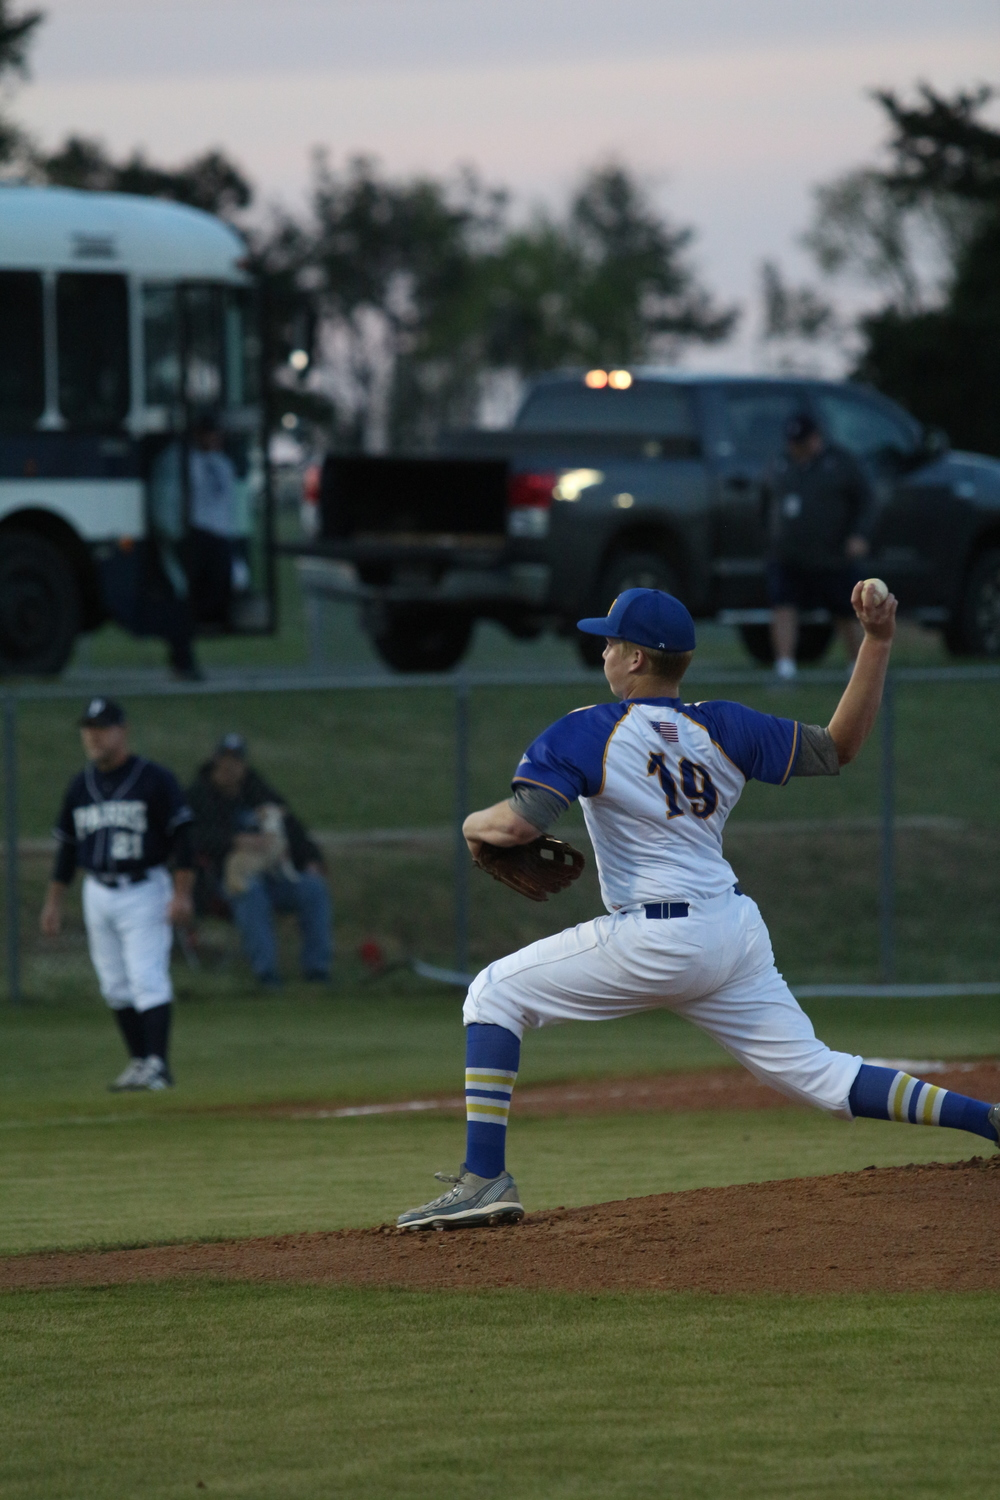 (Photo by Bill Higgins) Ty Jones pitching against Paris High Friday Night.